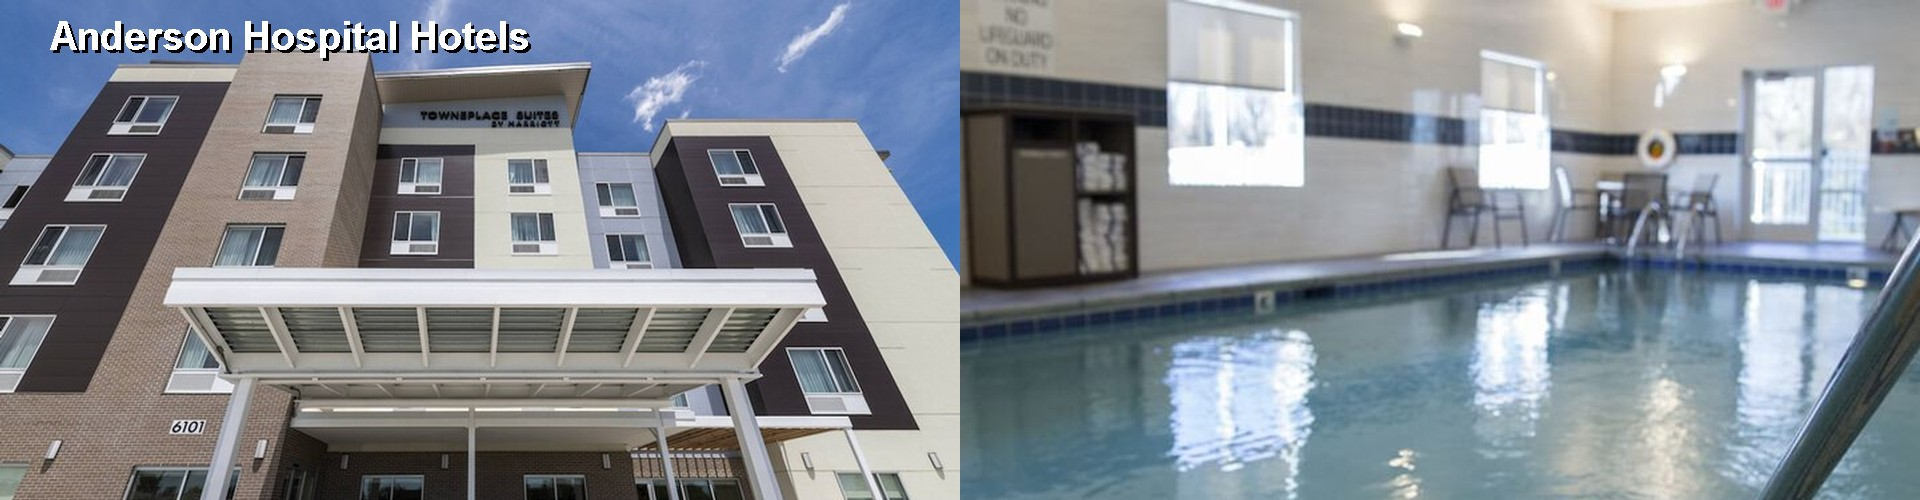 5 Best Hotels near Anderson Hospital